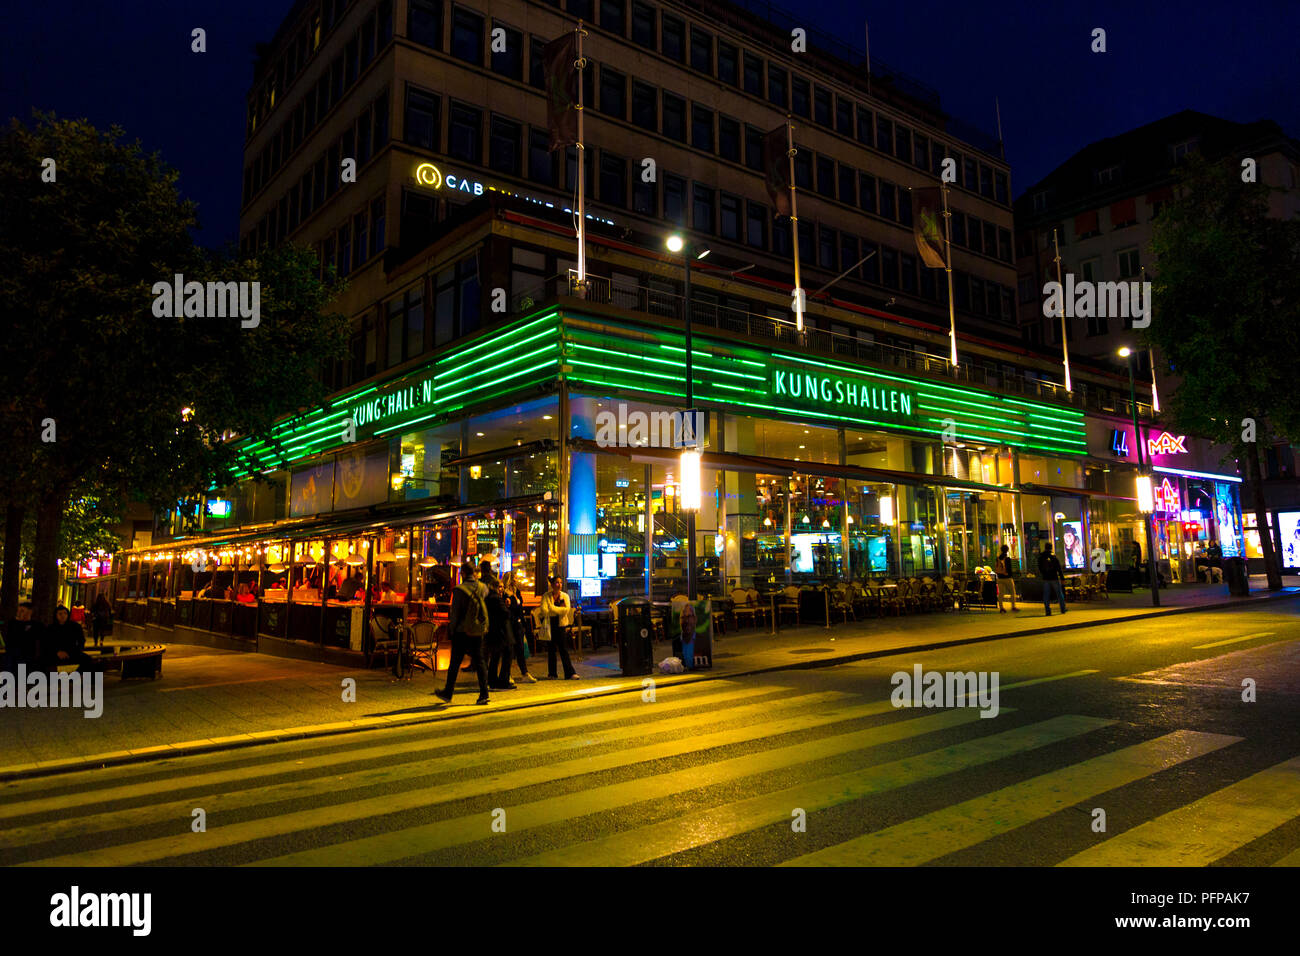 Exterior of Kungshallen food court at night time in Stockholm, Sweden - Stock Image